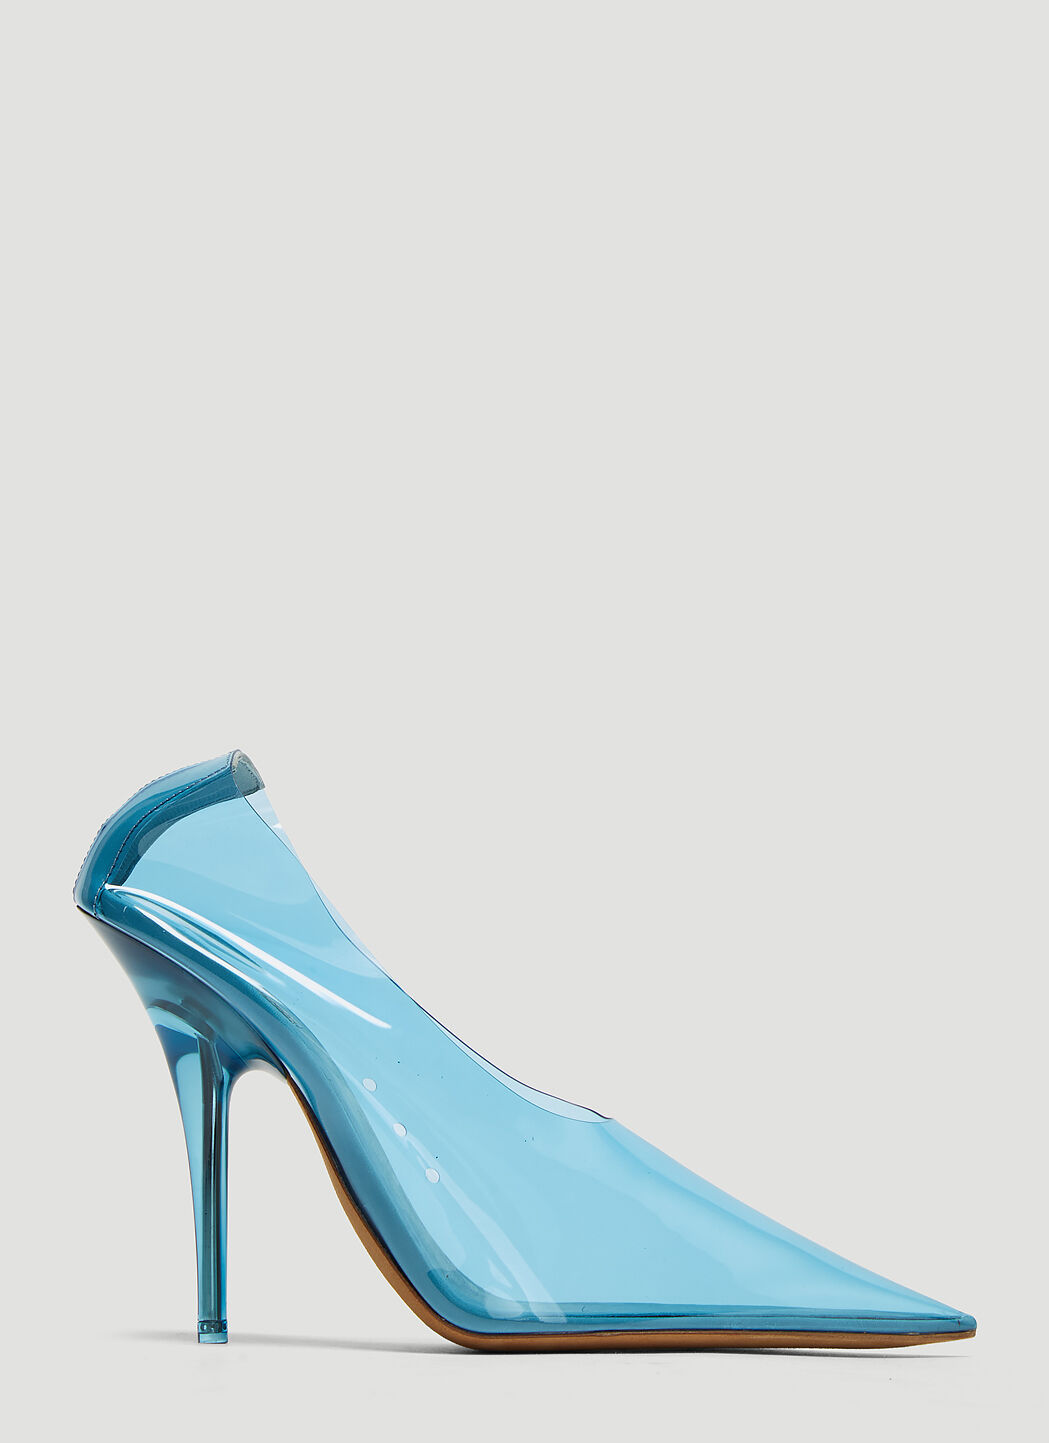 Yeezy PVC Pumps in Blue